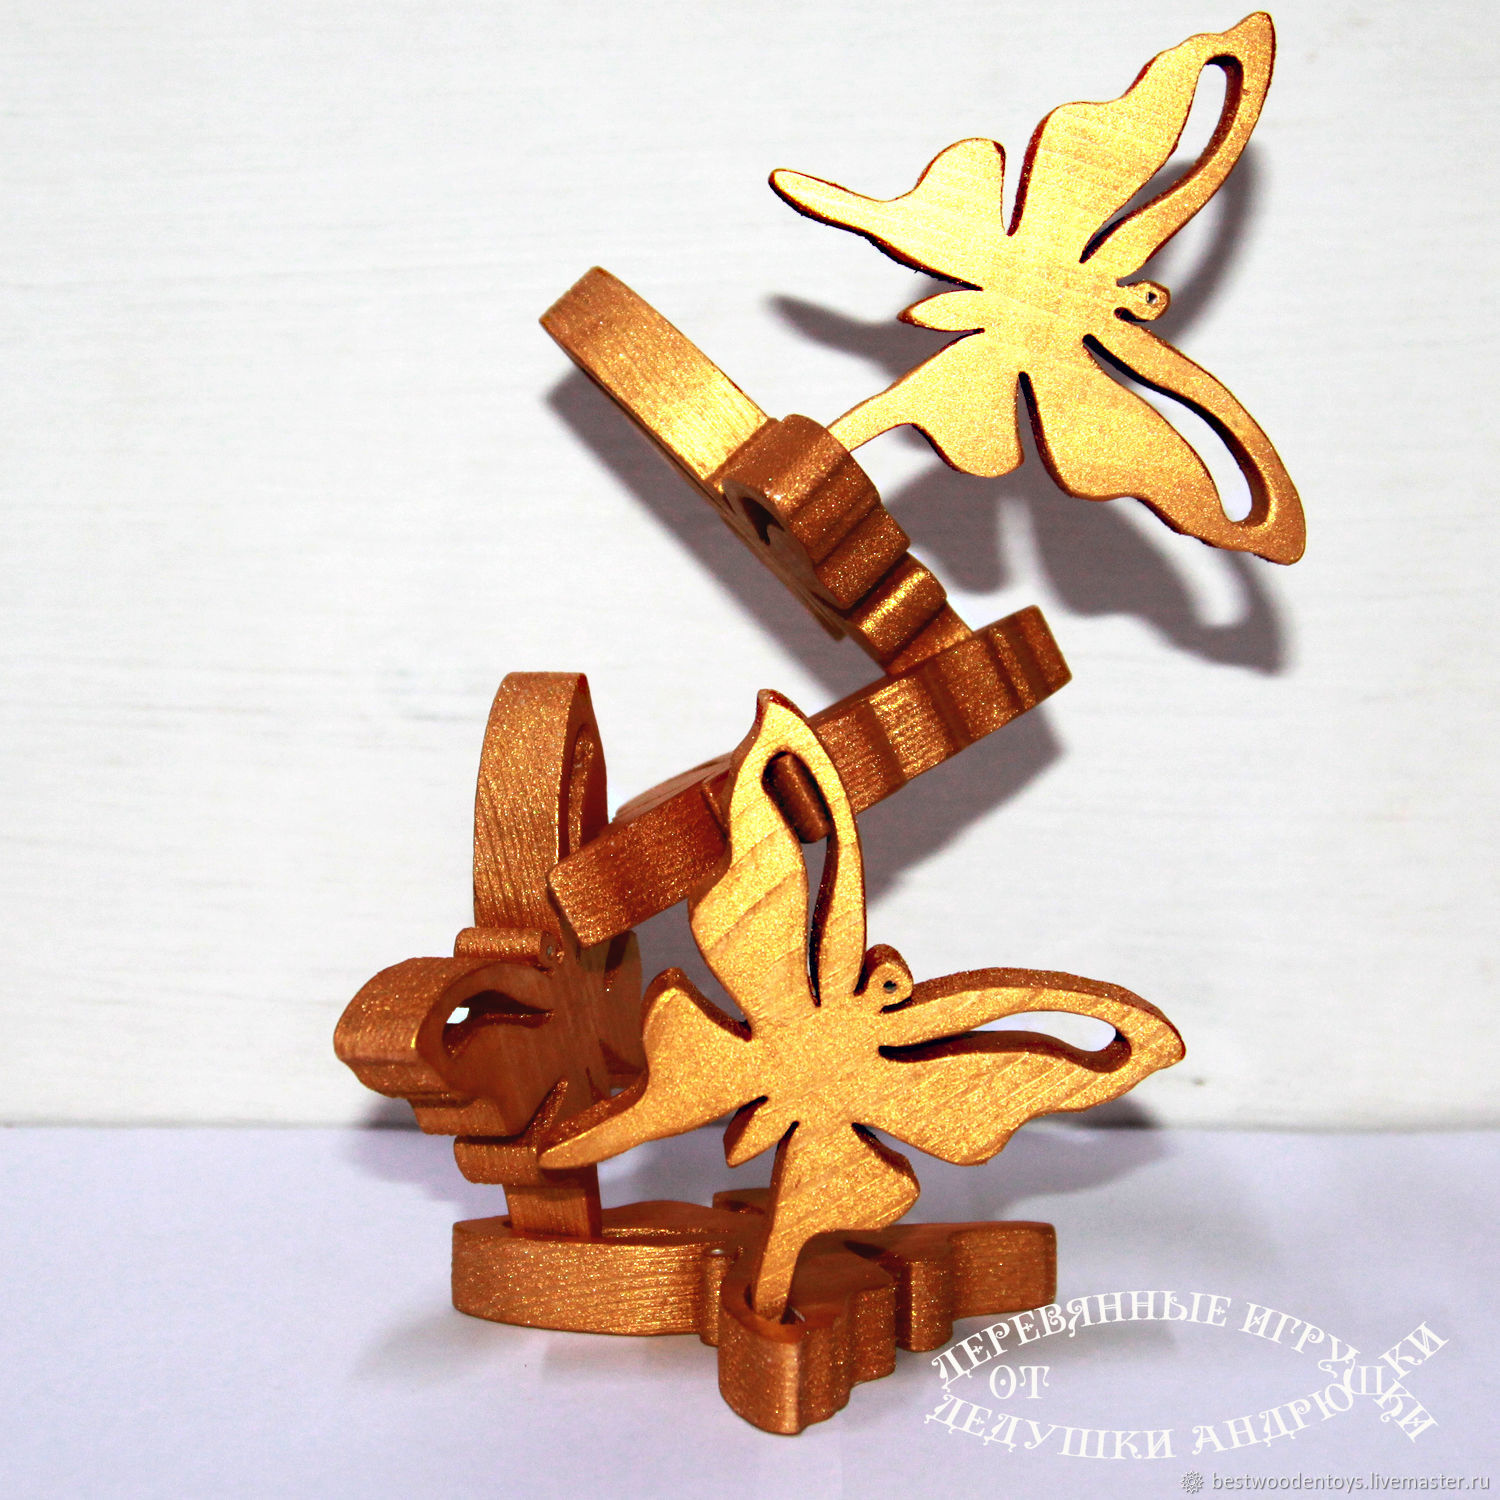 Butterfly. The balancer is made of wood. Decorations on the Christmas tree. With faith in Miracles! Wooden toys from Grandpa Andrewski.